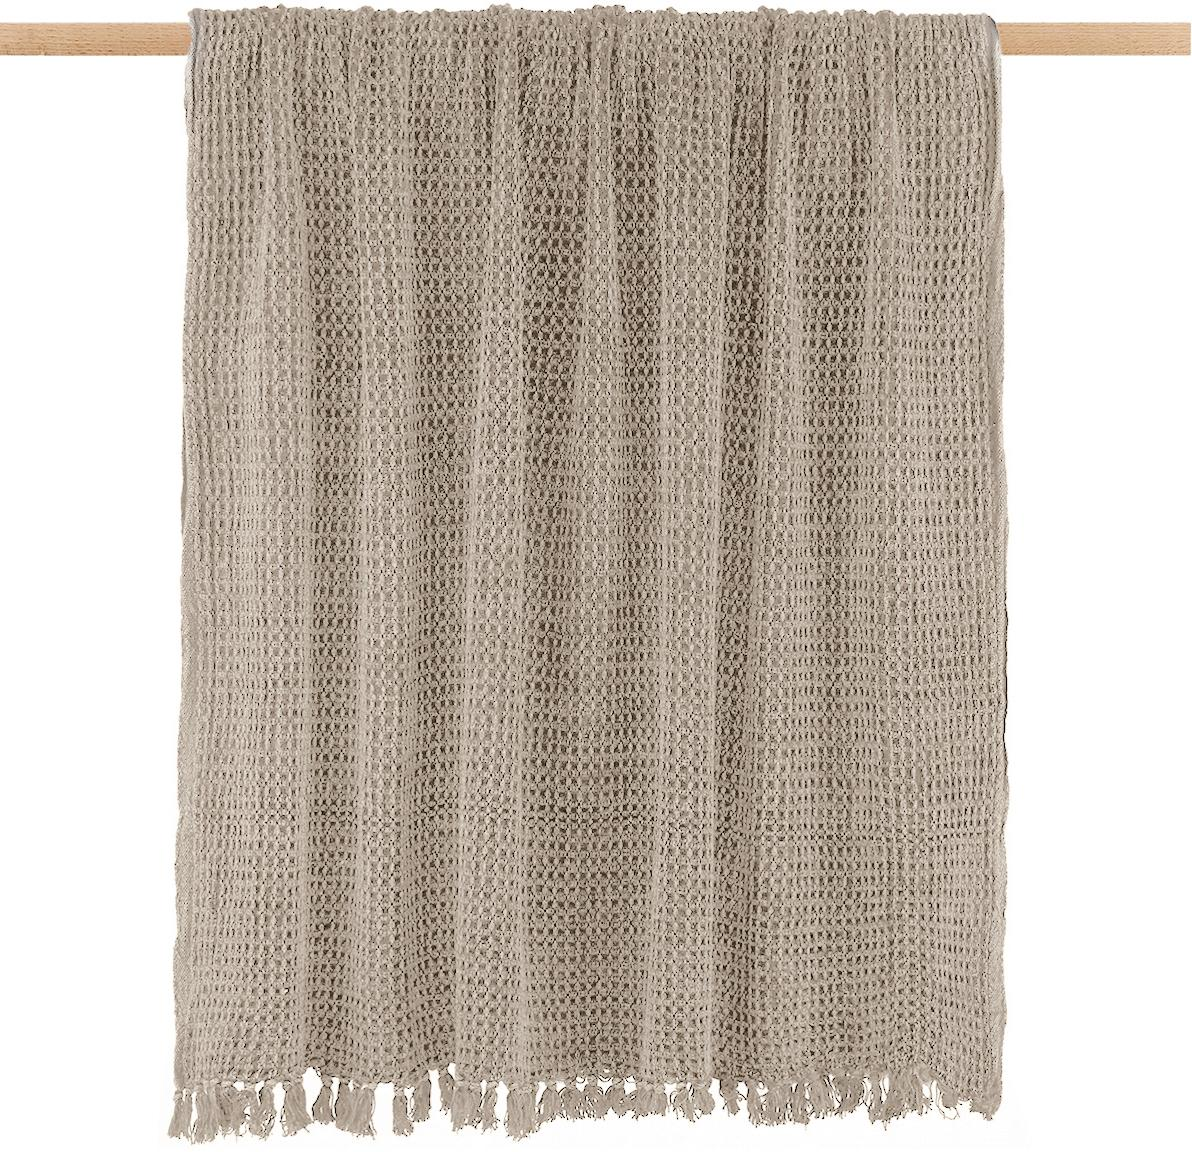 Plaid Waffle in Beige, 100% Baumwolle, Taupe, 130 x 170 cm